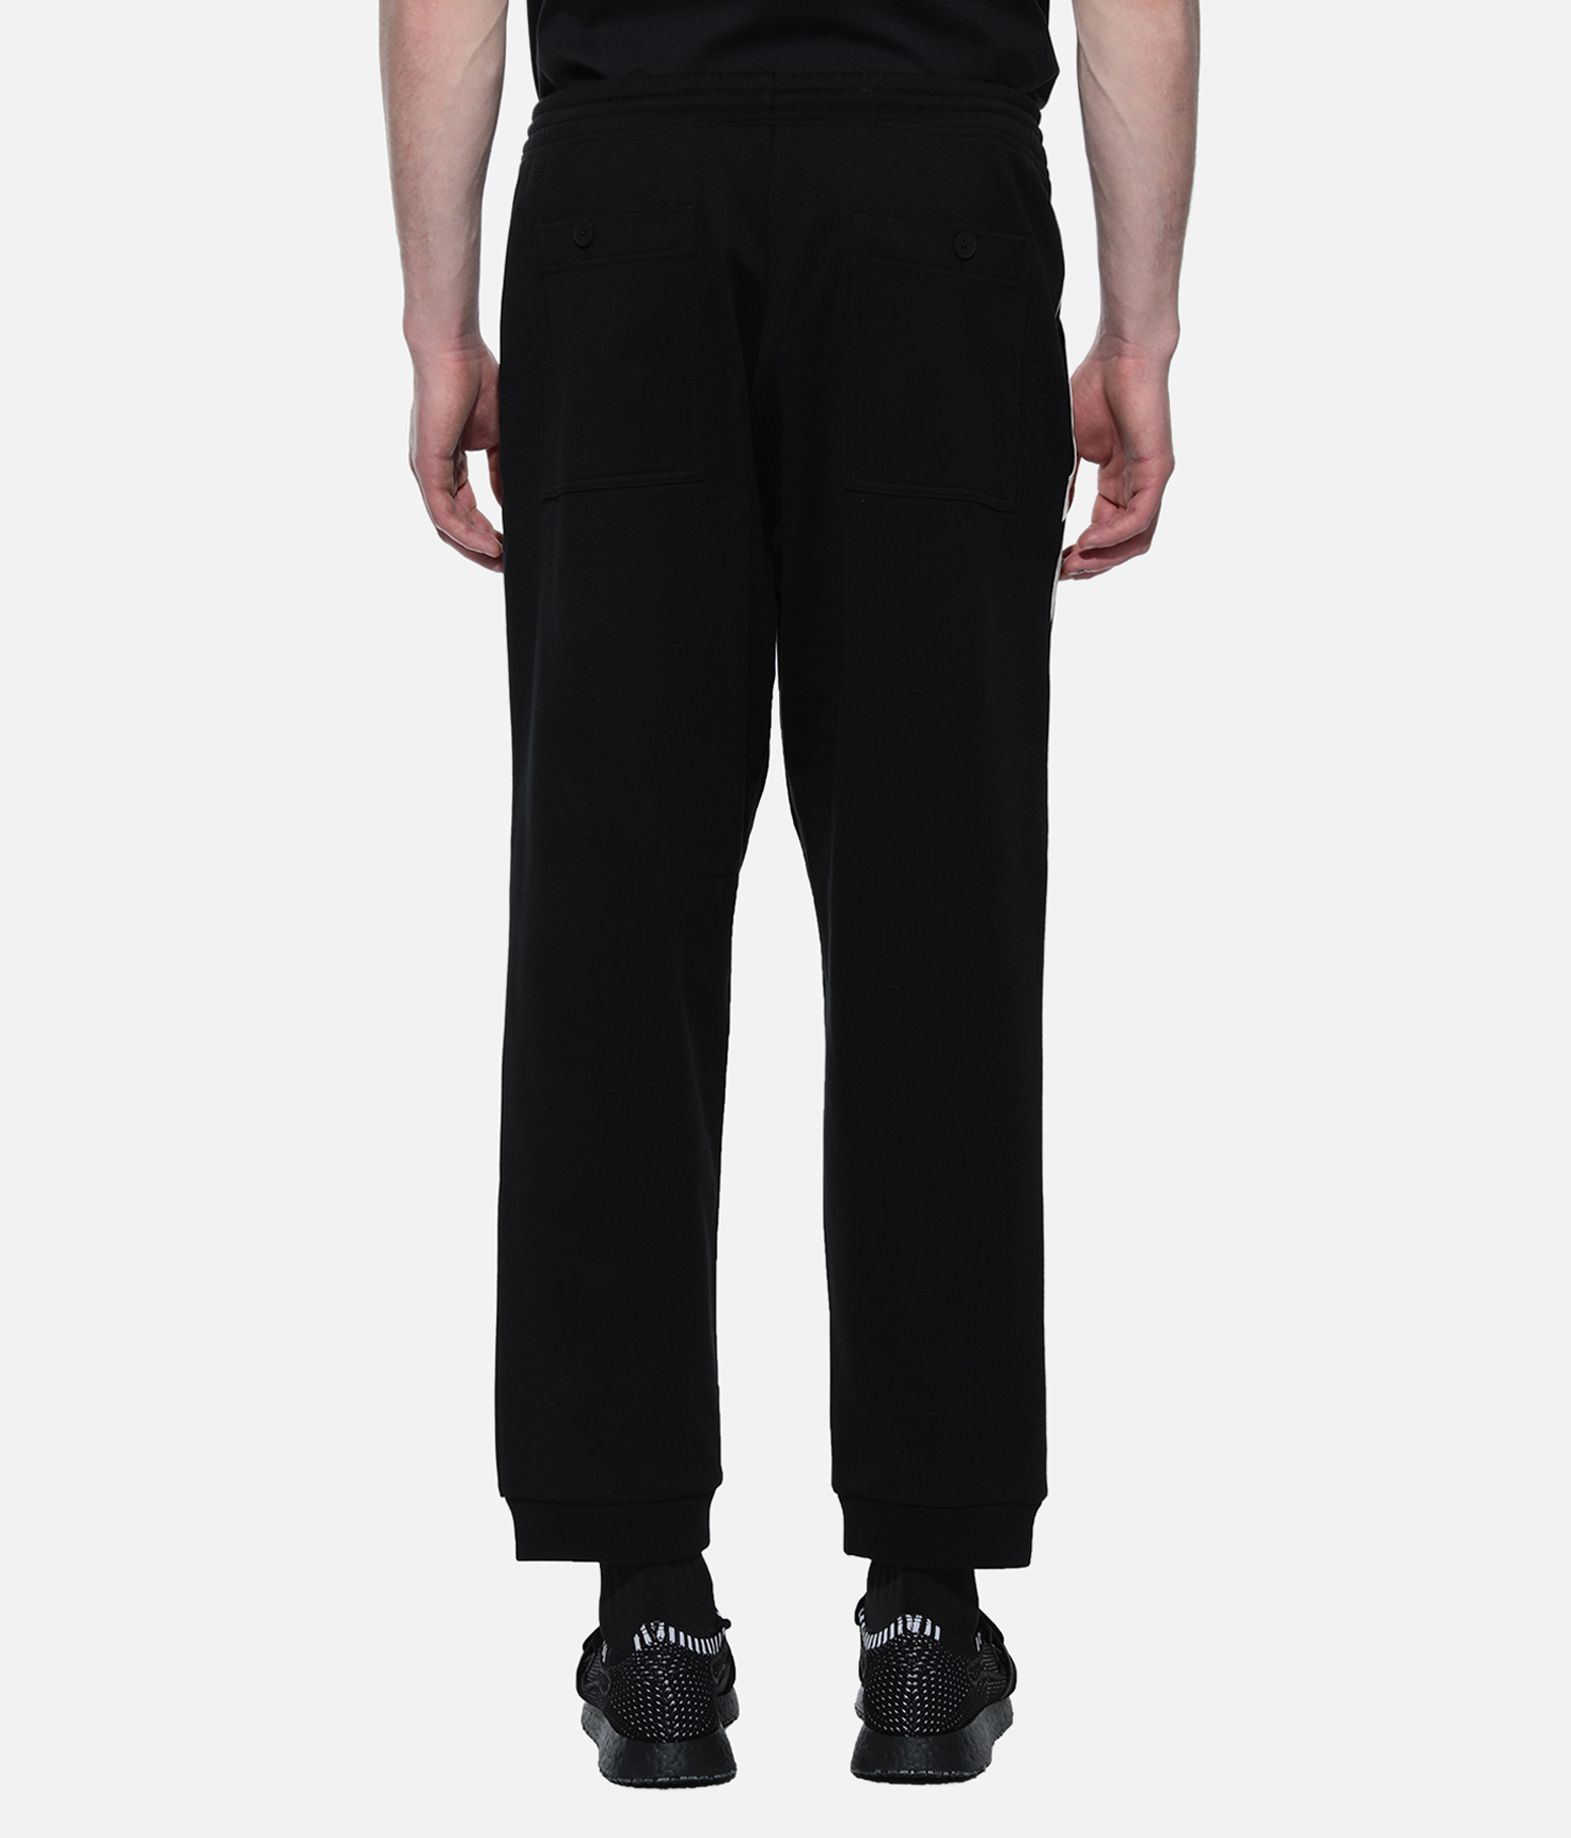 Y-3 Y-3 3-Stripes Cuff Pants Casual trouser Man d